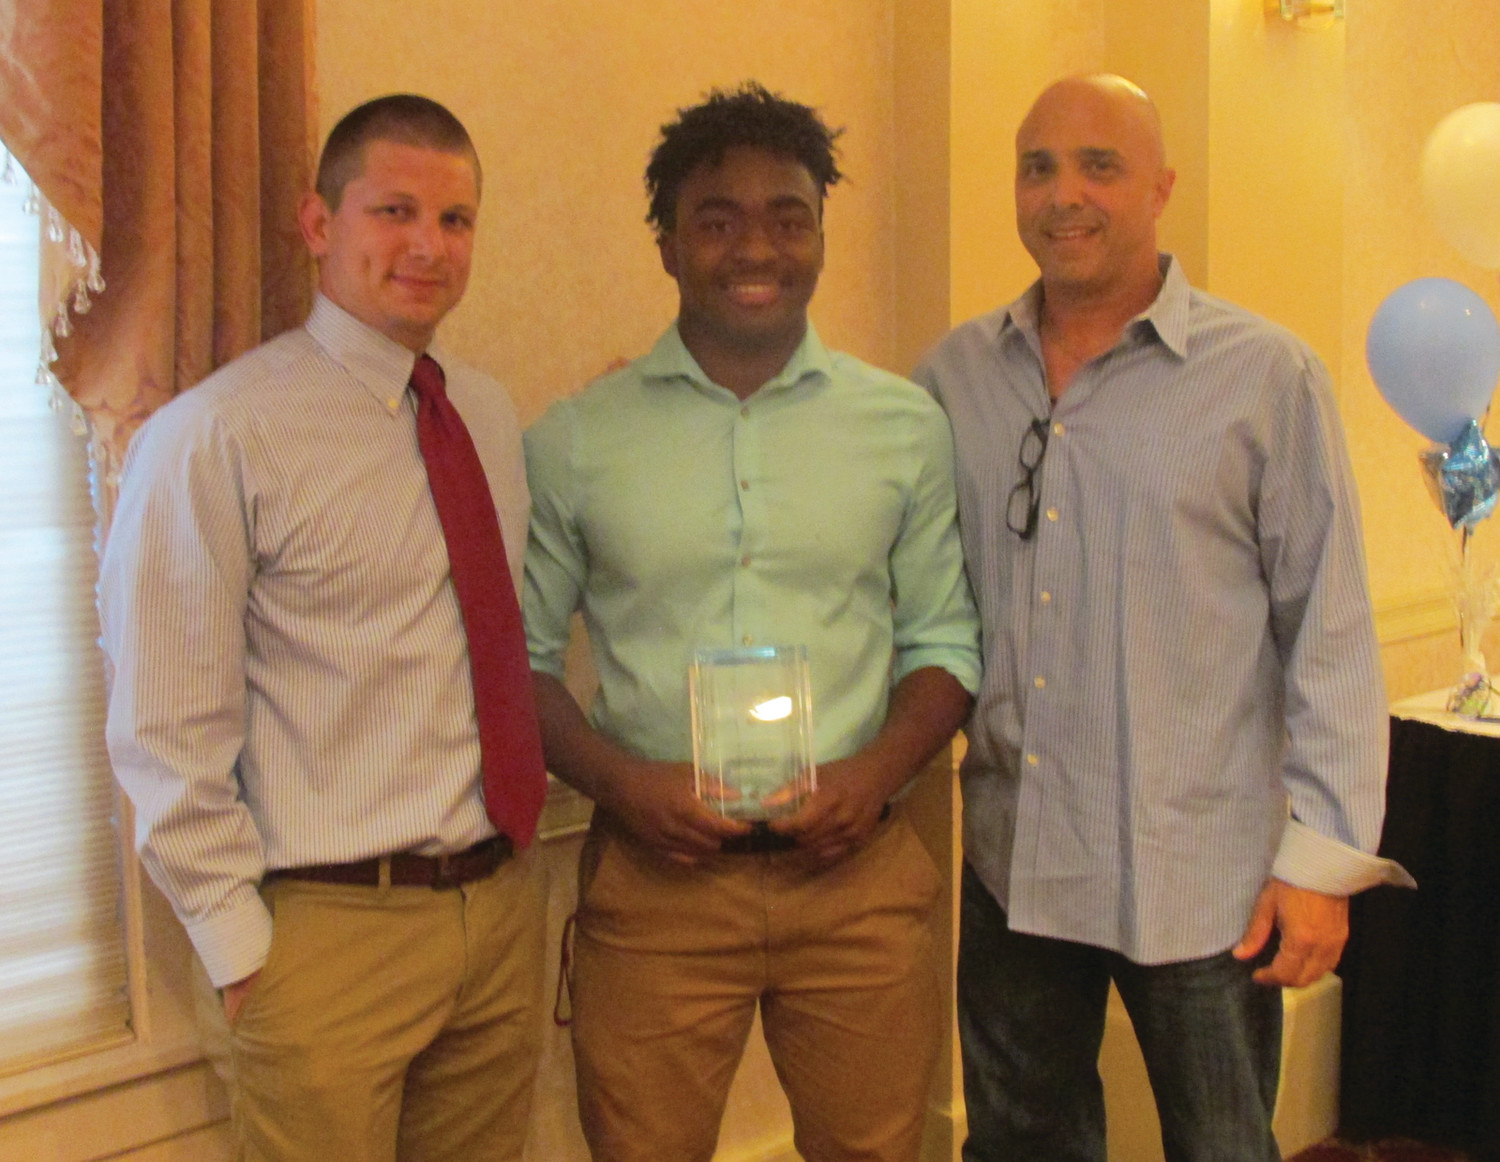 SUPER STAR: Elijah Burgess (center), who Monday night was honored as the JHS Male Athlete of the Year, is joined by wrestling Coach Kevin Sutherland (left) and football coach Joe Acciardo after receiving the coveted honor. (Sun Rise photo by Pete Fontaine)